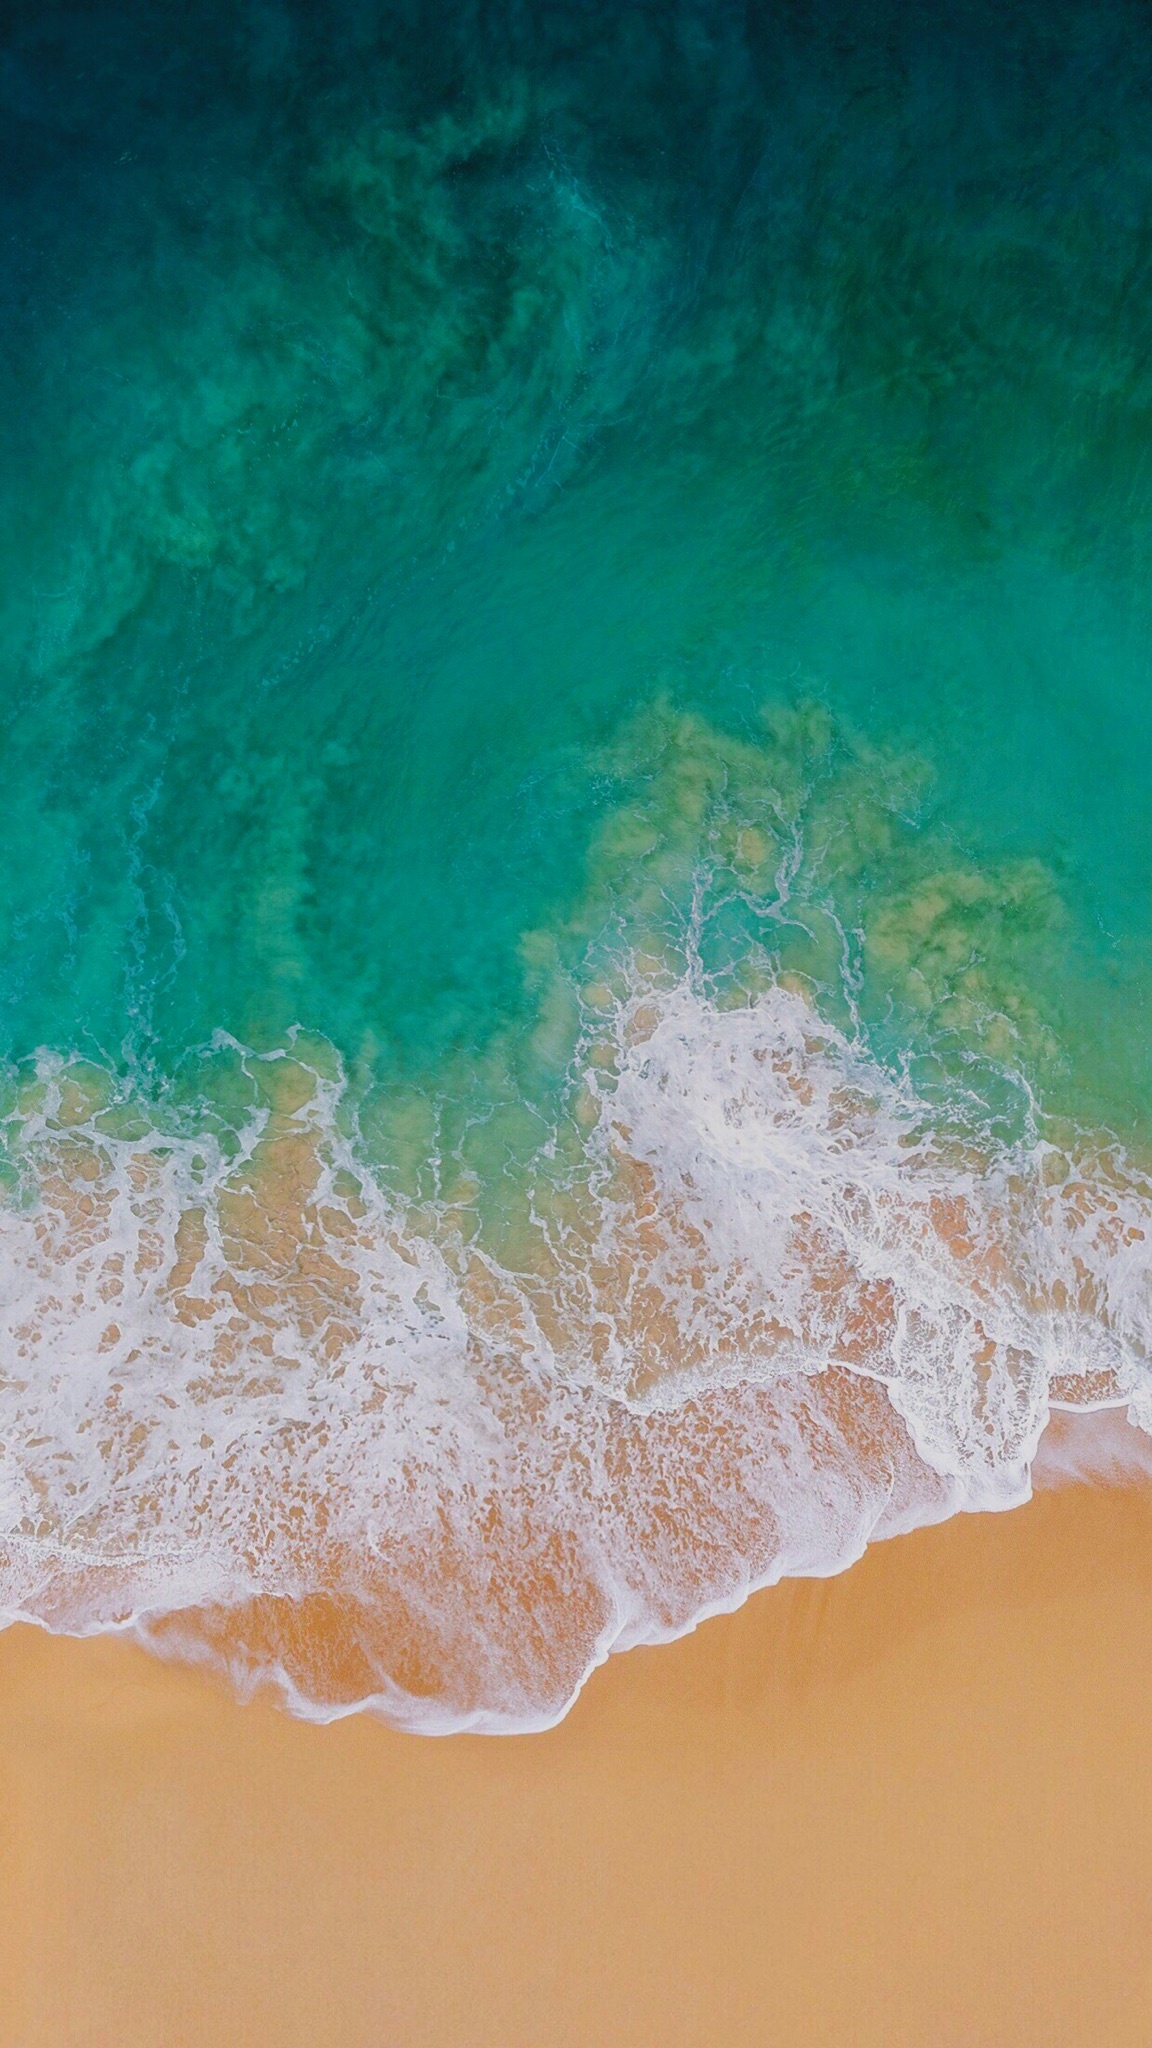 ios 11 wallpaper from beta version   Album on Imgur 1152x2048